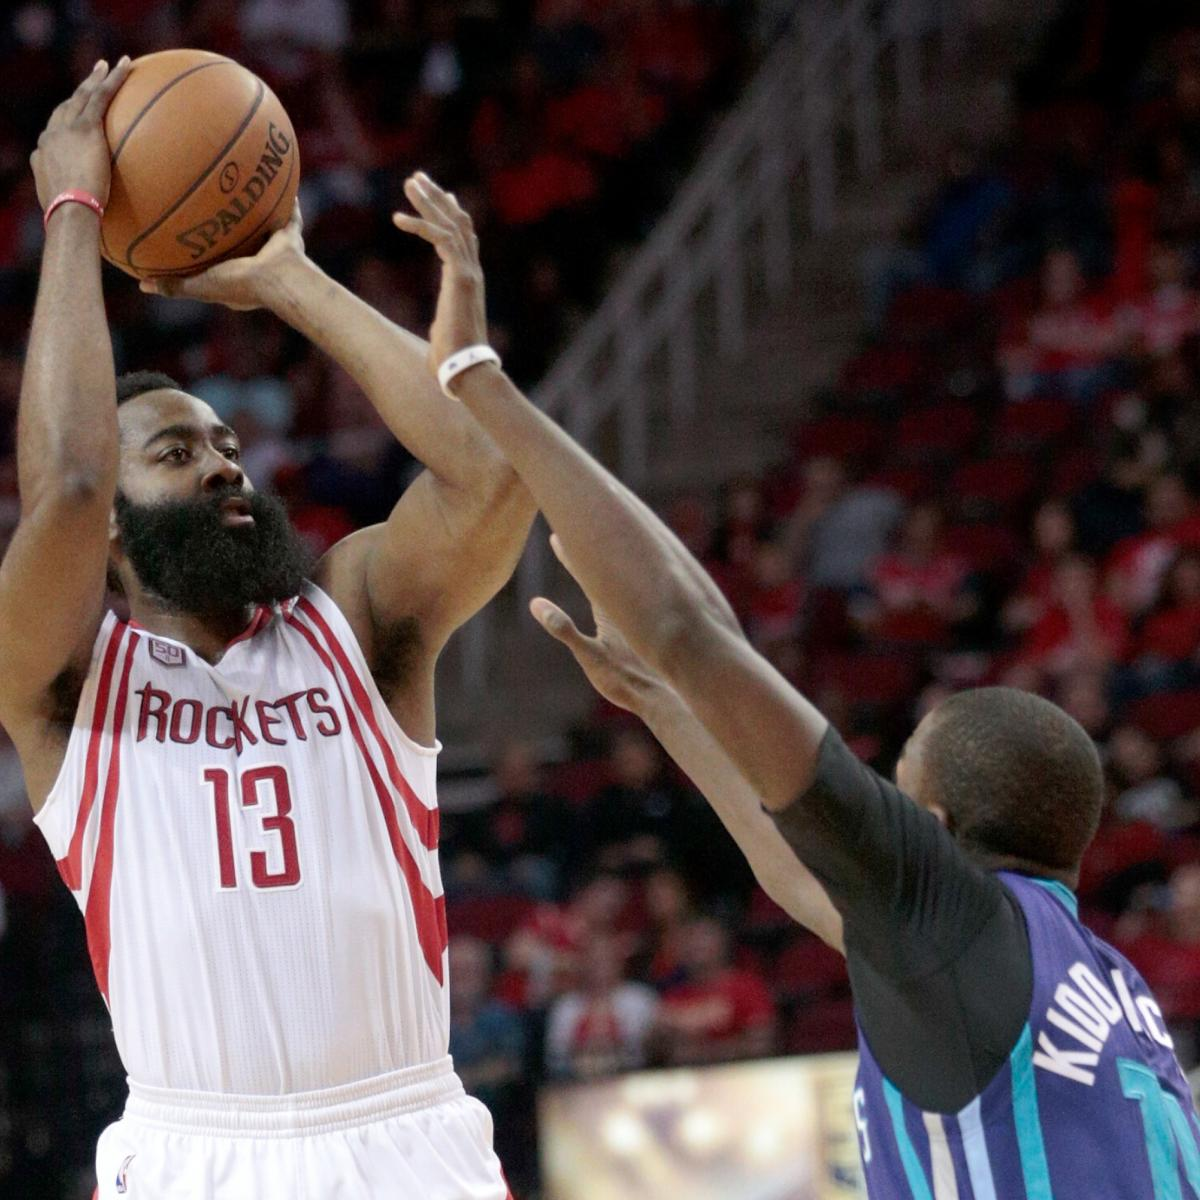 James Harden Points Last Night: James Harden Has 2 Triple-Doubles This Season With 40